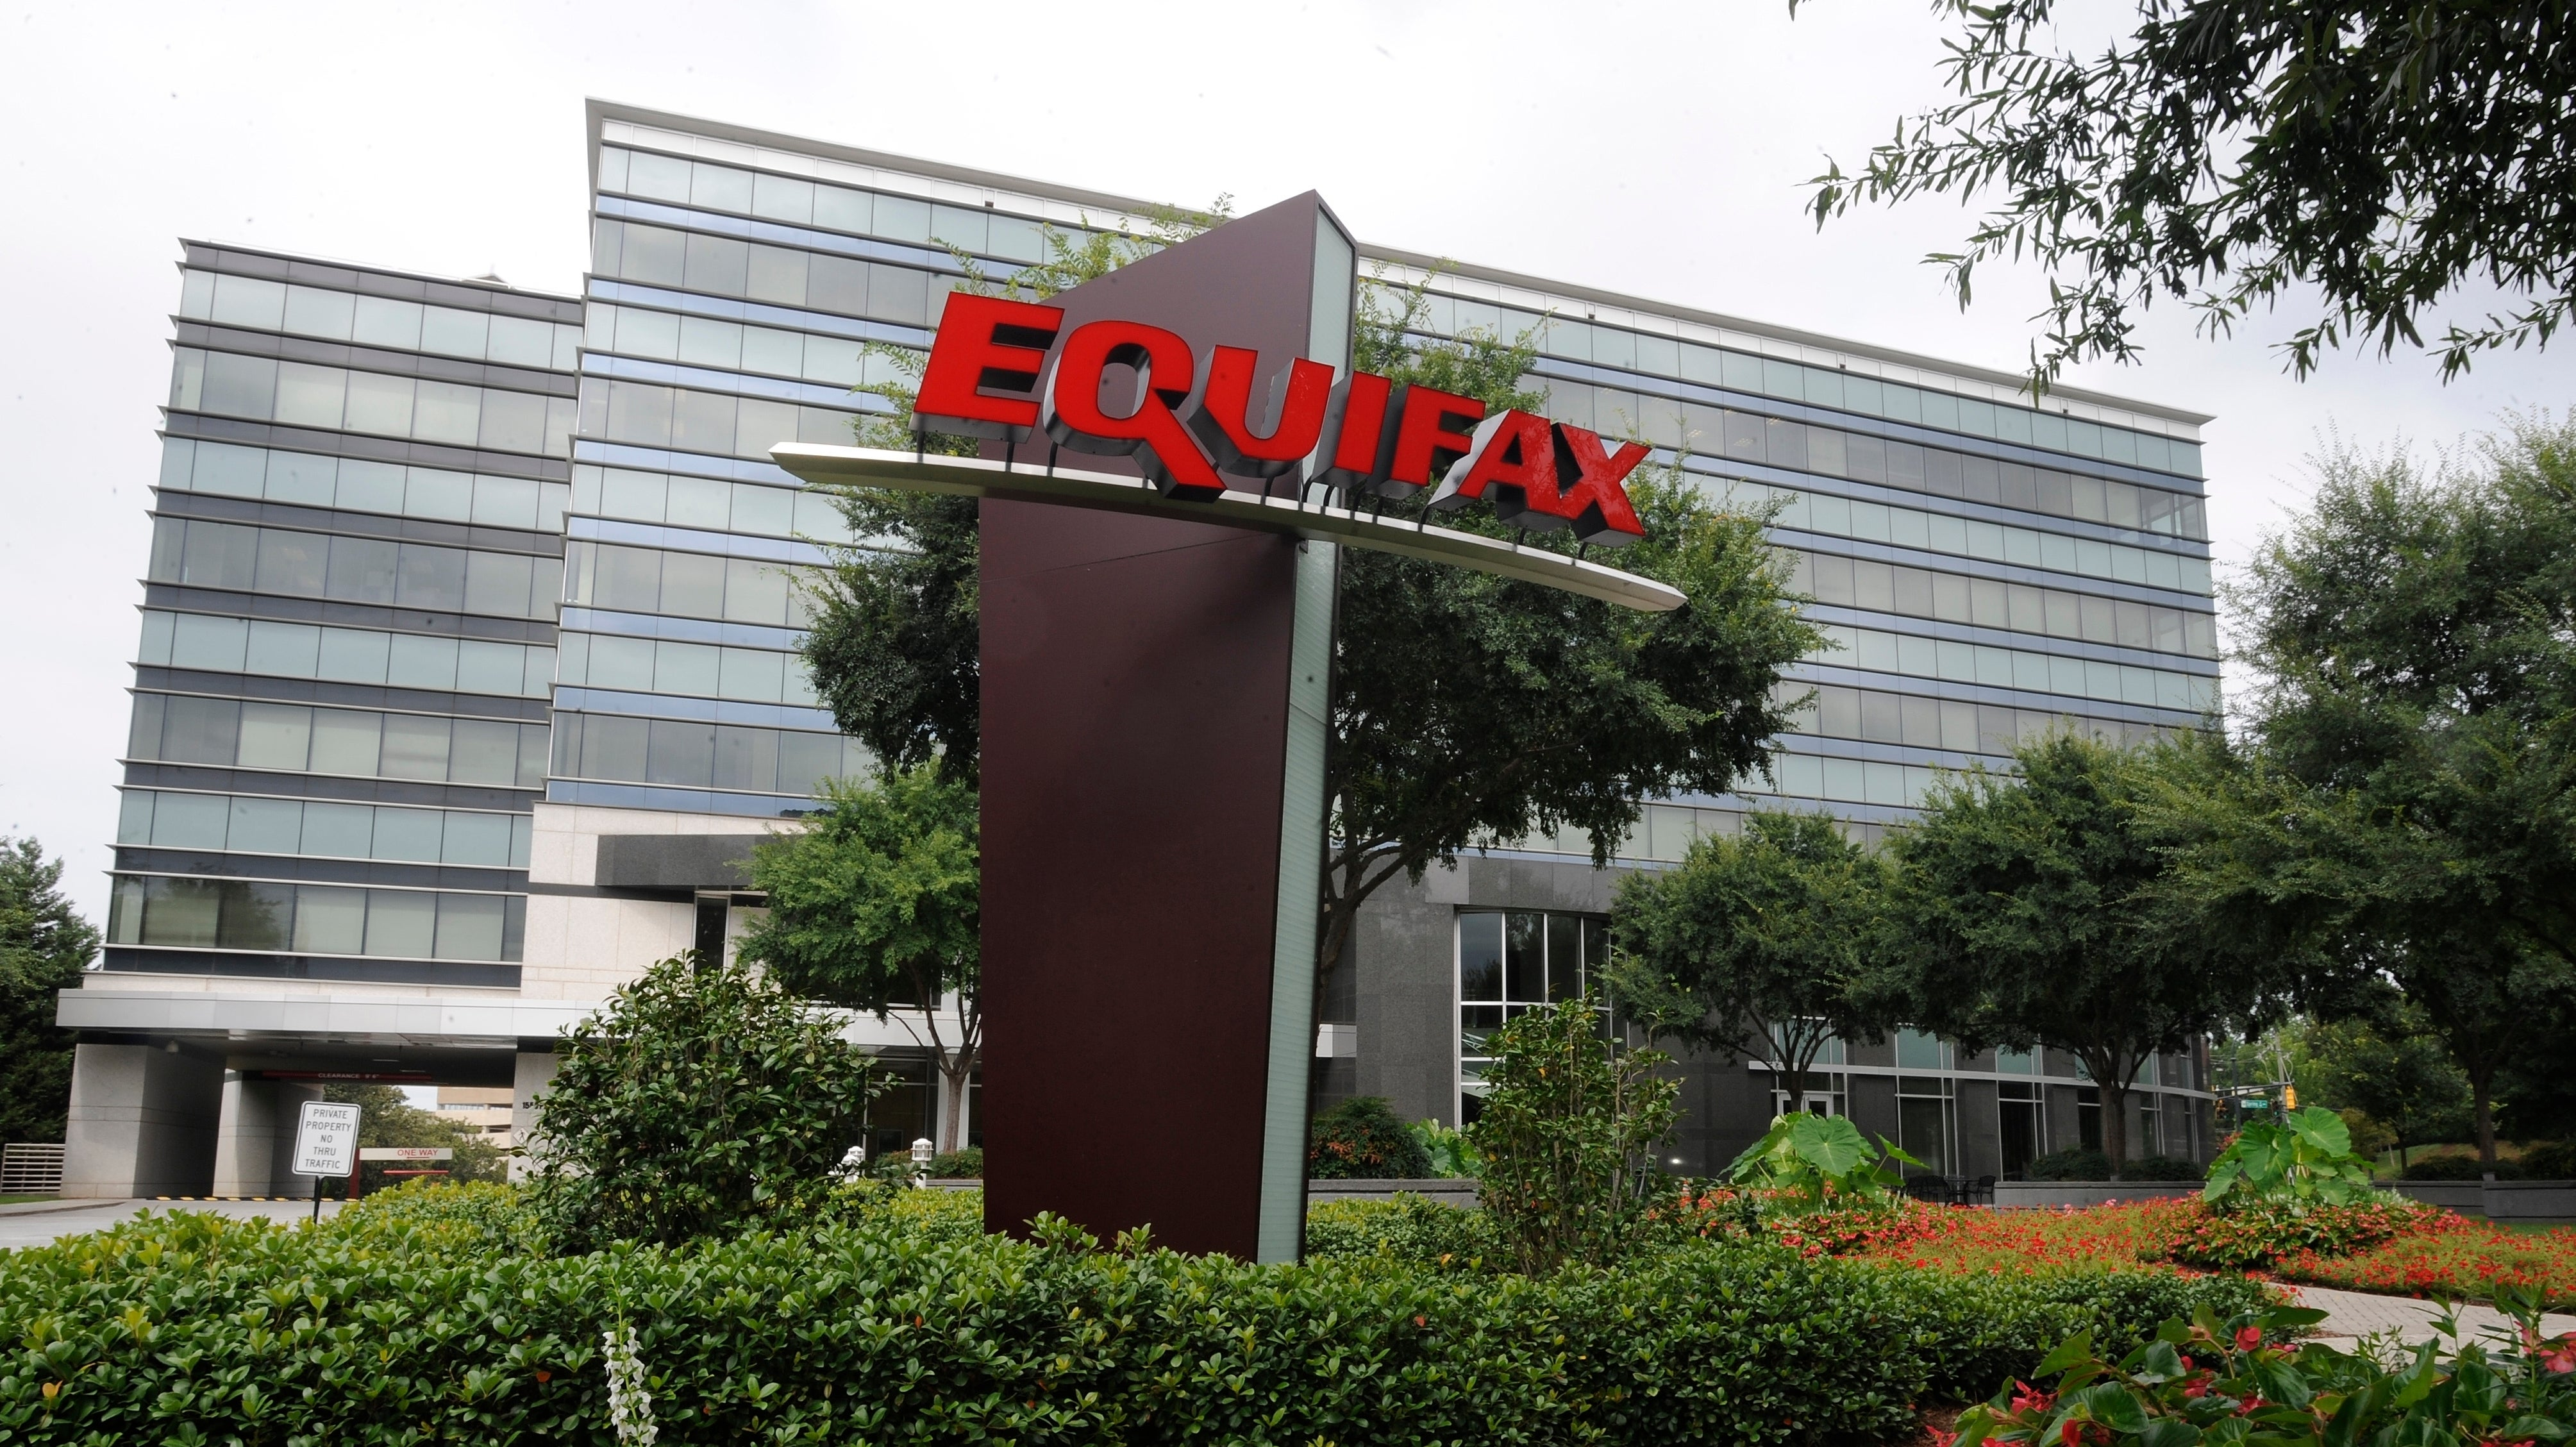 Report: Stolen Equifax Data Hasn't Been Sold Online, Raising More Questions Than Answers